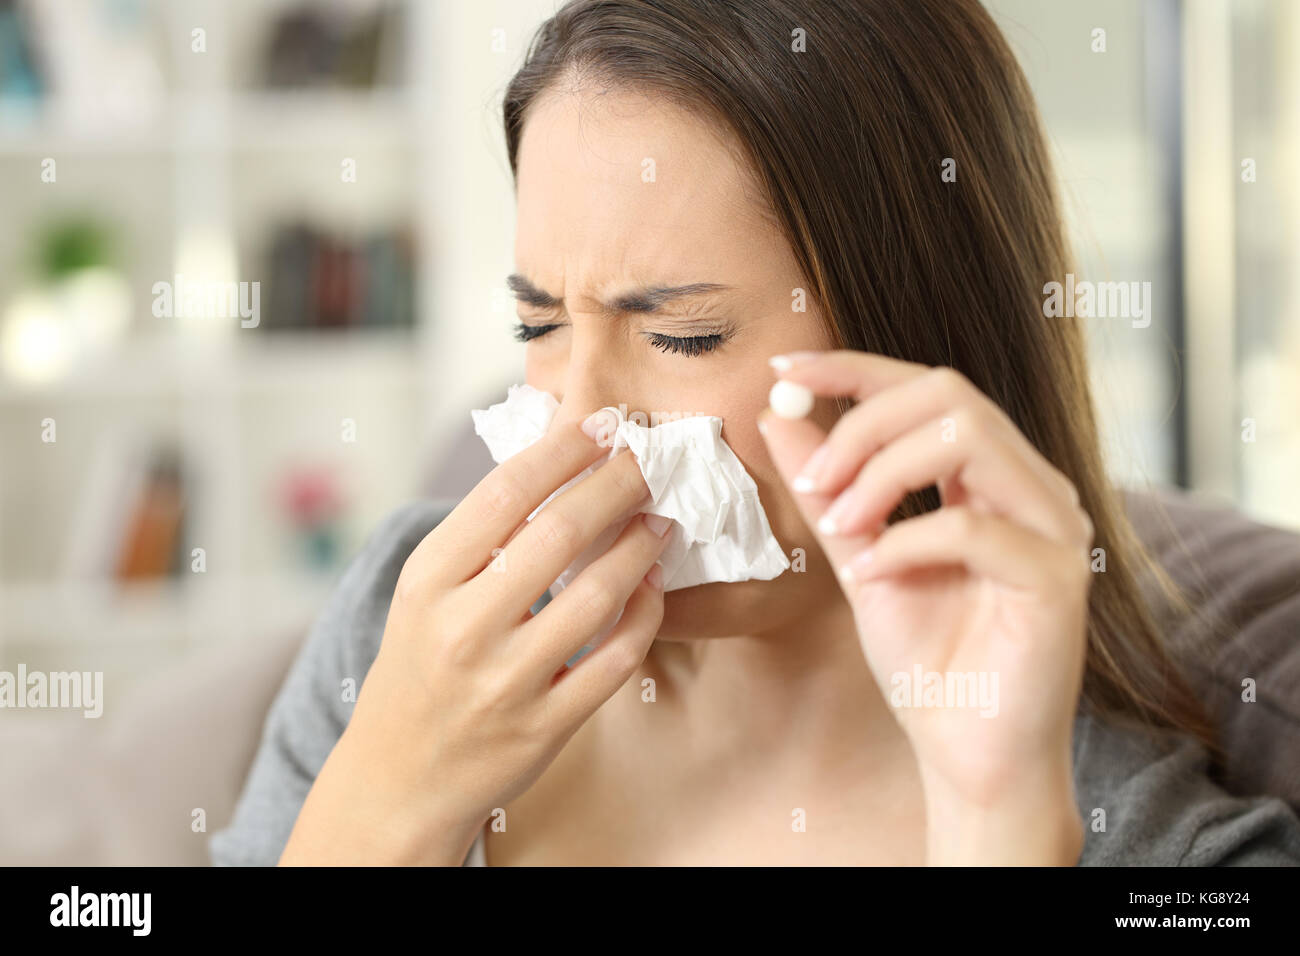 Woman coughing covering mouth with a tissue and holding a pill sitting on a sofa in a house interior - Stock Image